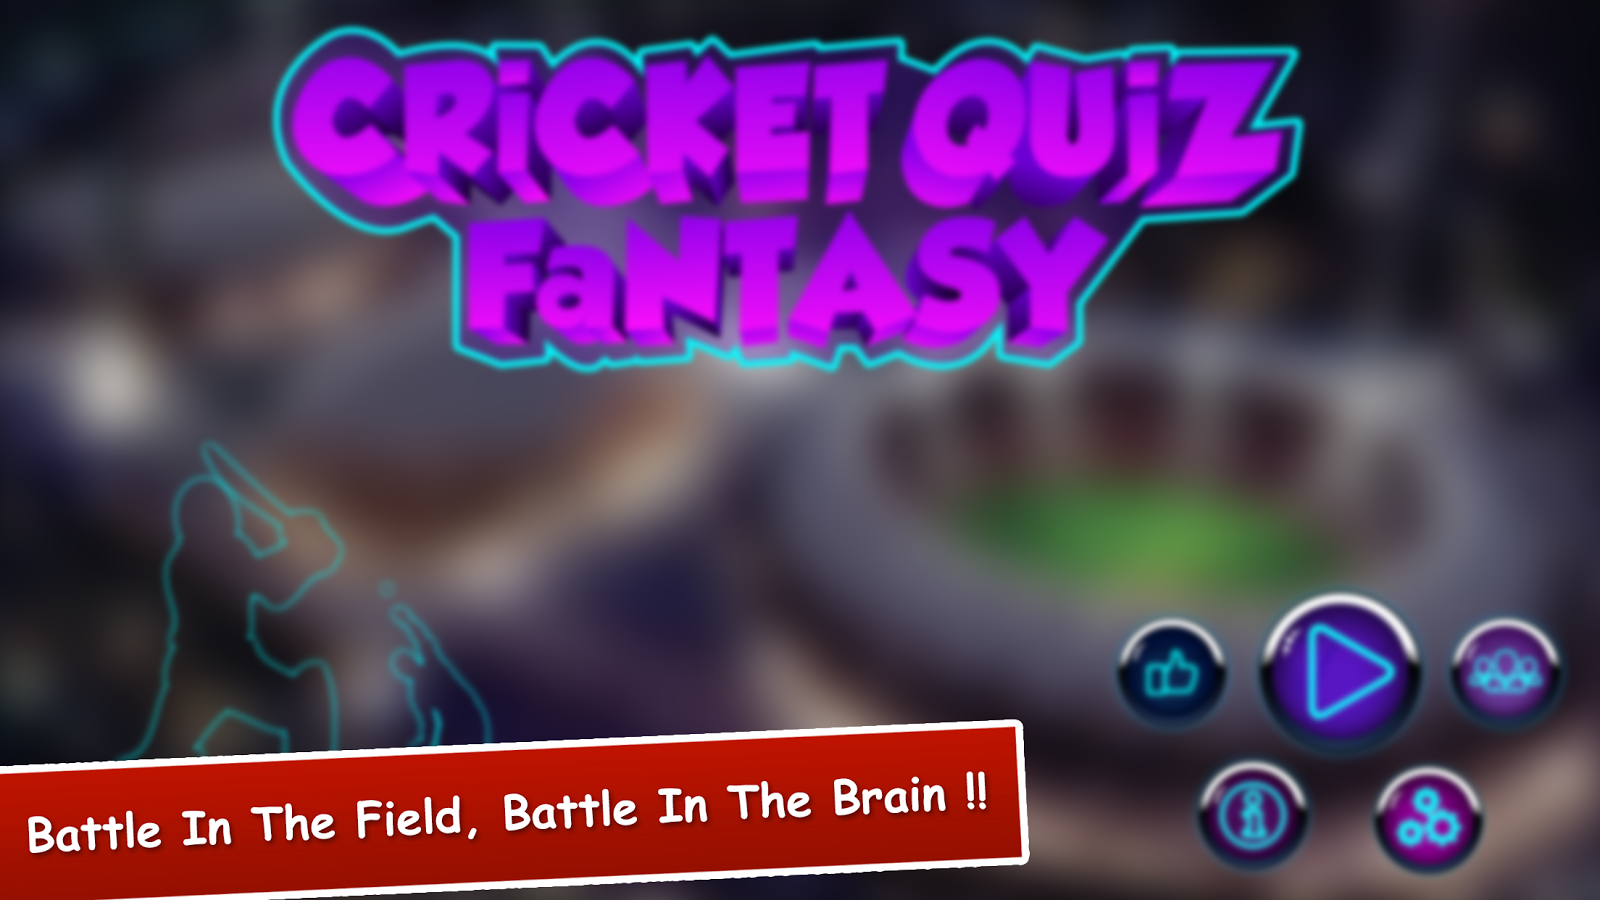 Cricket Quiz Fantacy